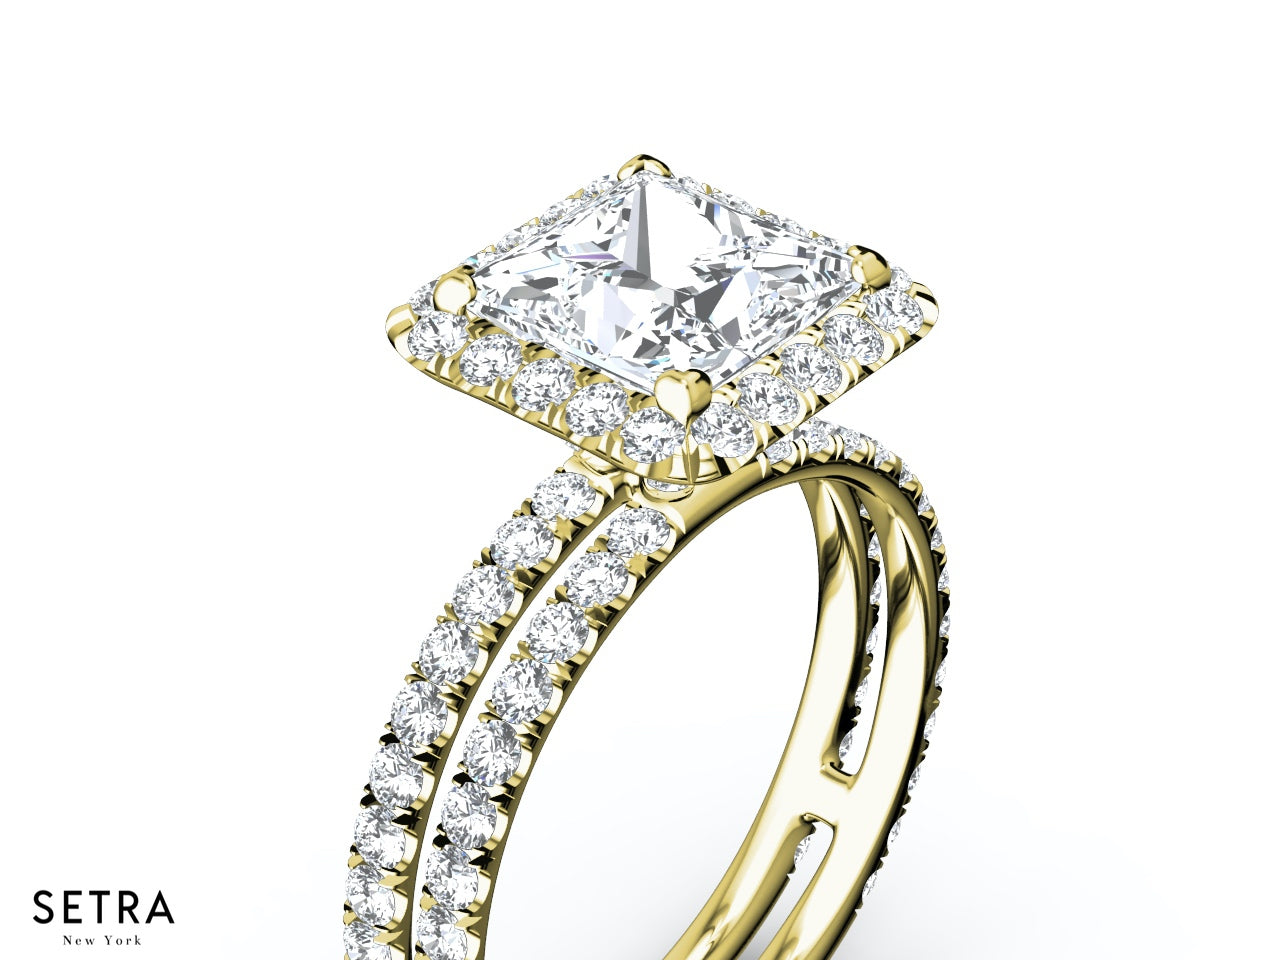 subsampling rings diamond a in gold product crop rose band matching tiffany central wedding shop ring false with solitaire upscale engagement harmony scale